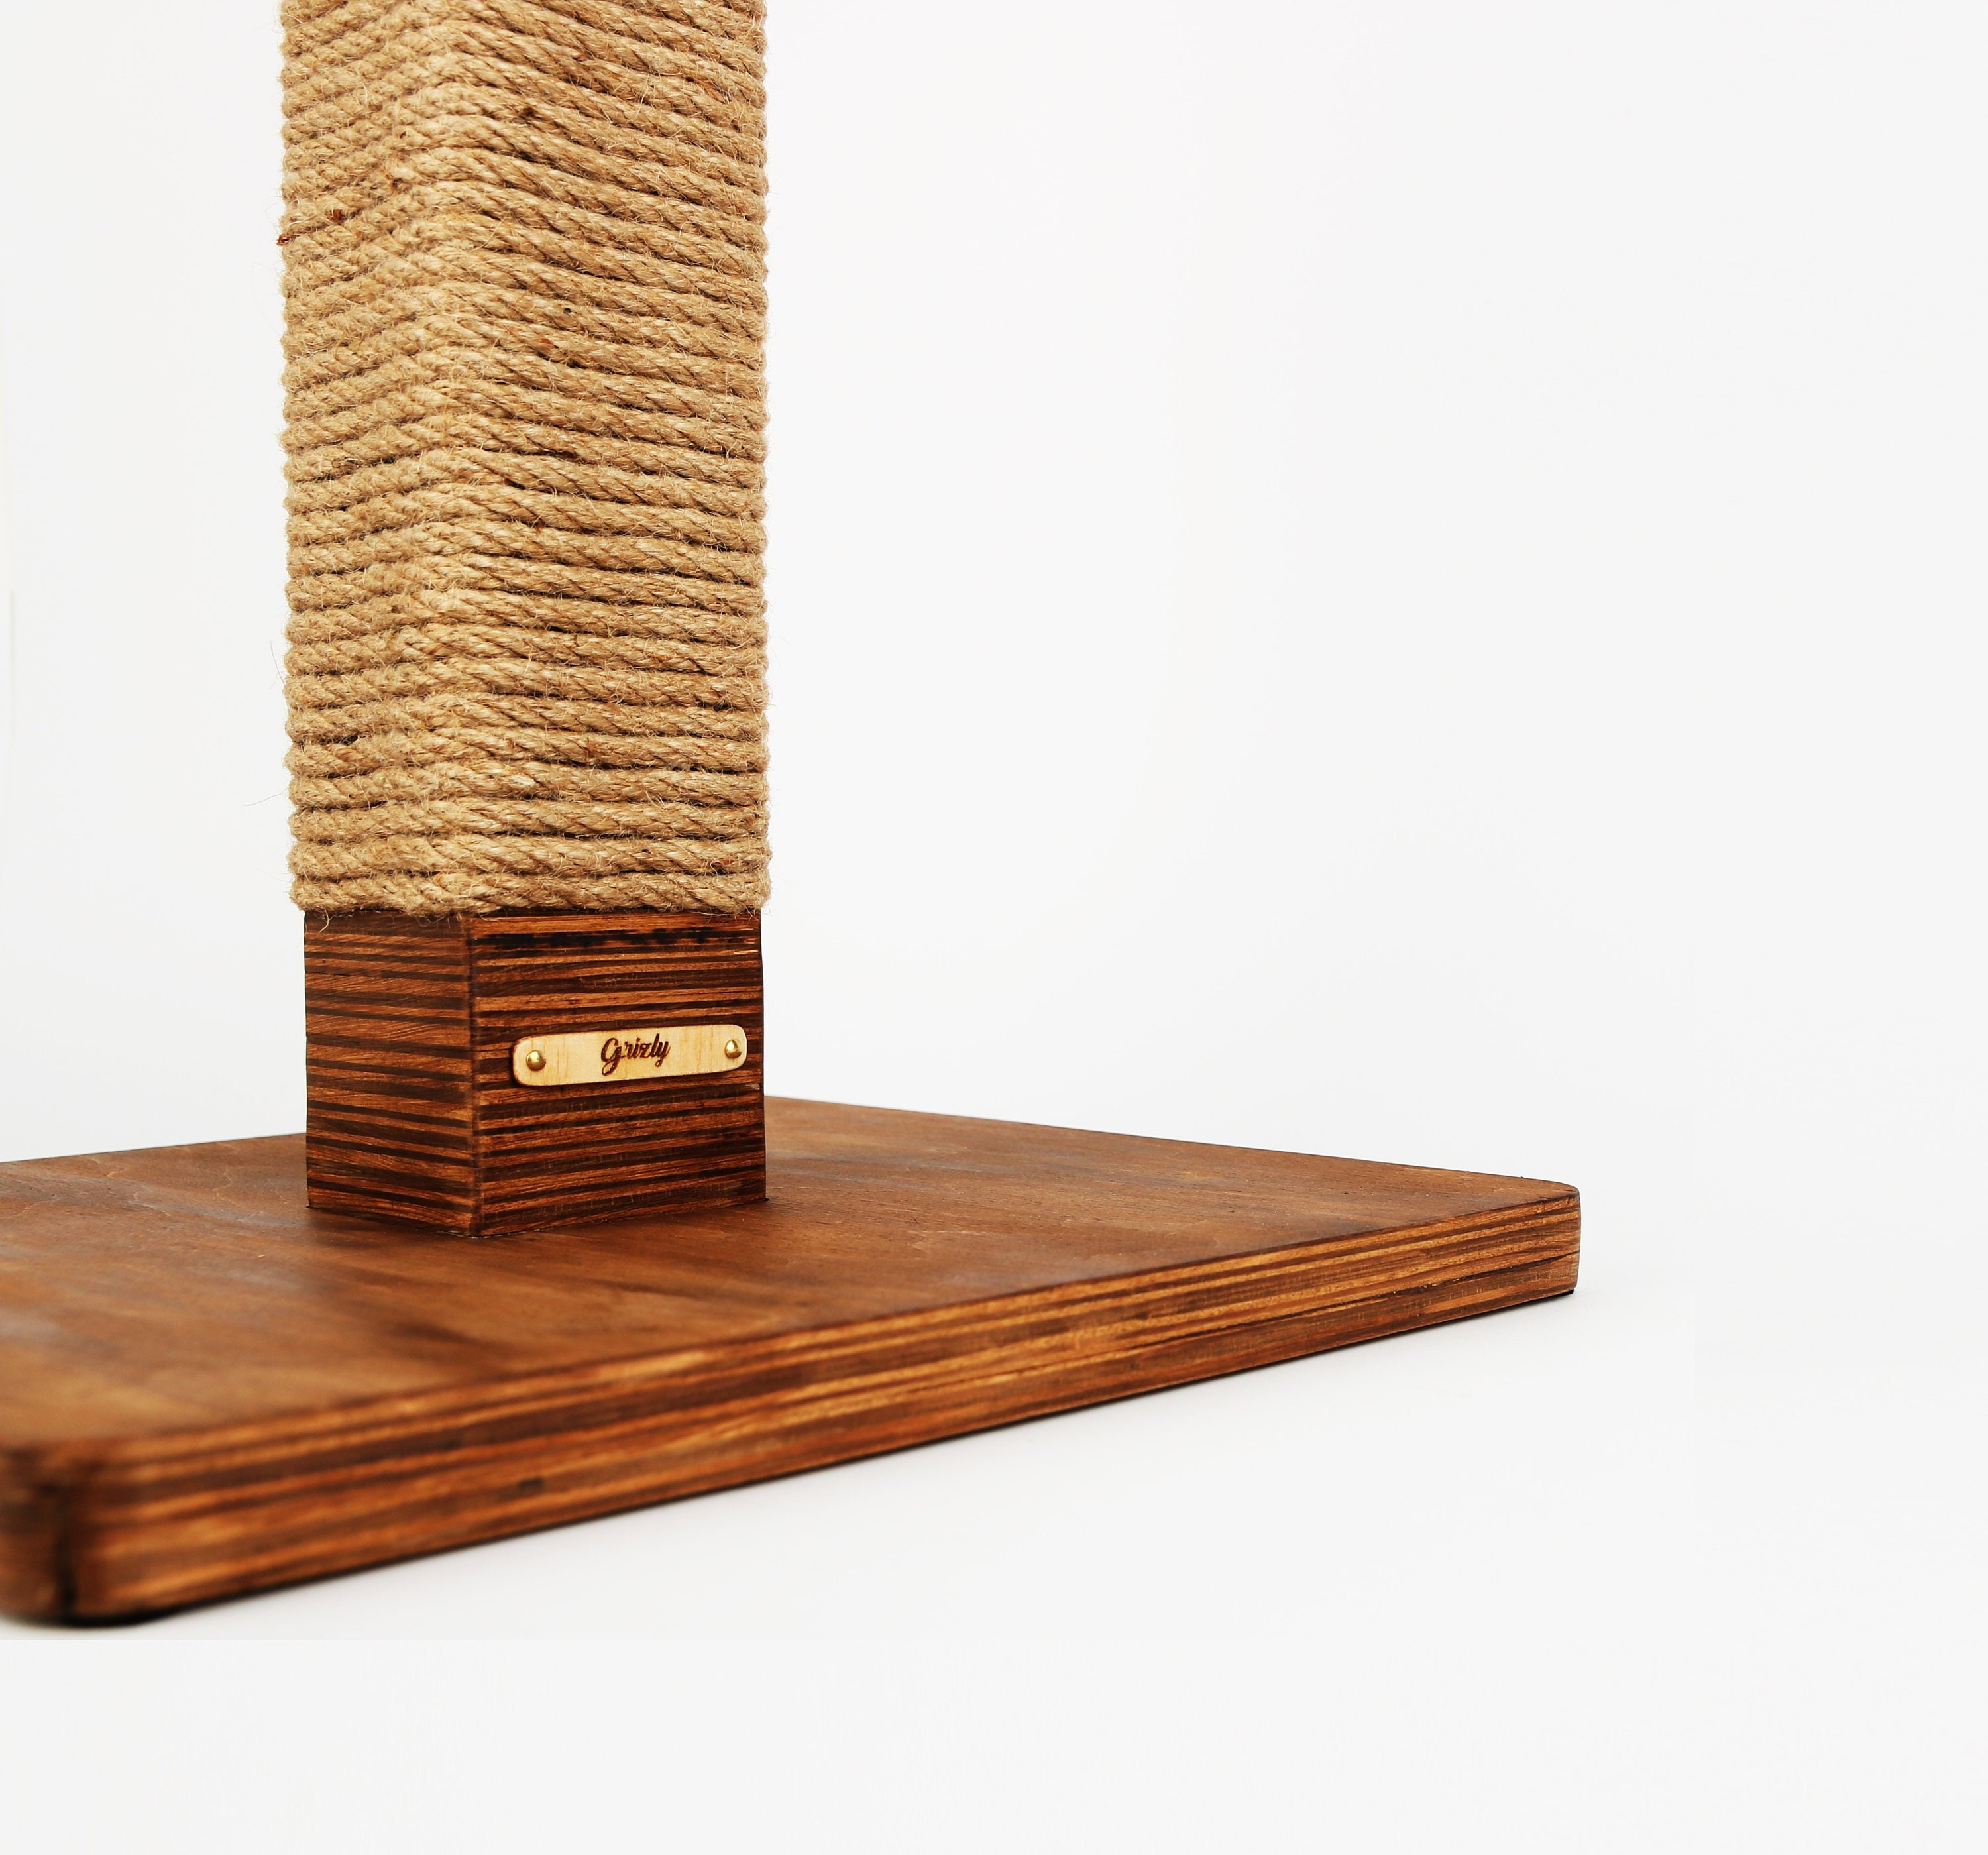 Luxury Custom Cat Scratcher Personalized Wooden Cat Scratching Post Cat Toy Personalized Different Colors Of Wood 20 Metrs Of Rope